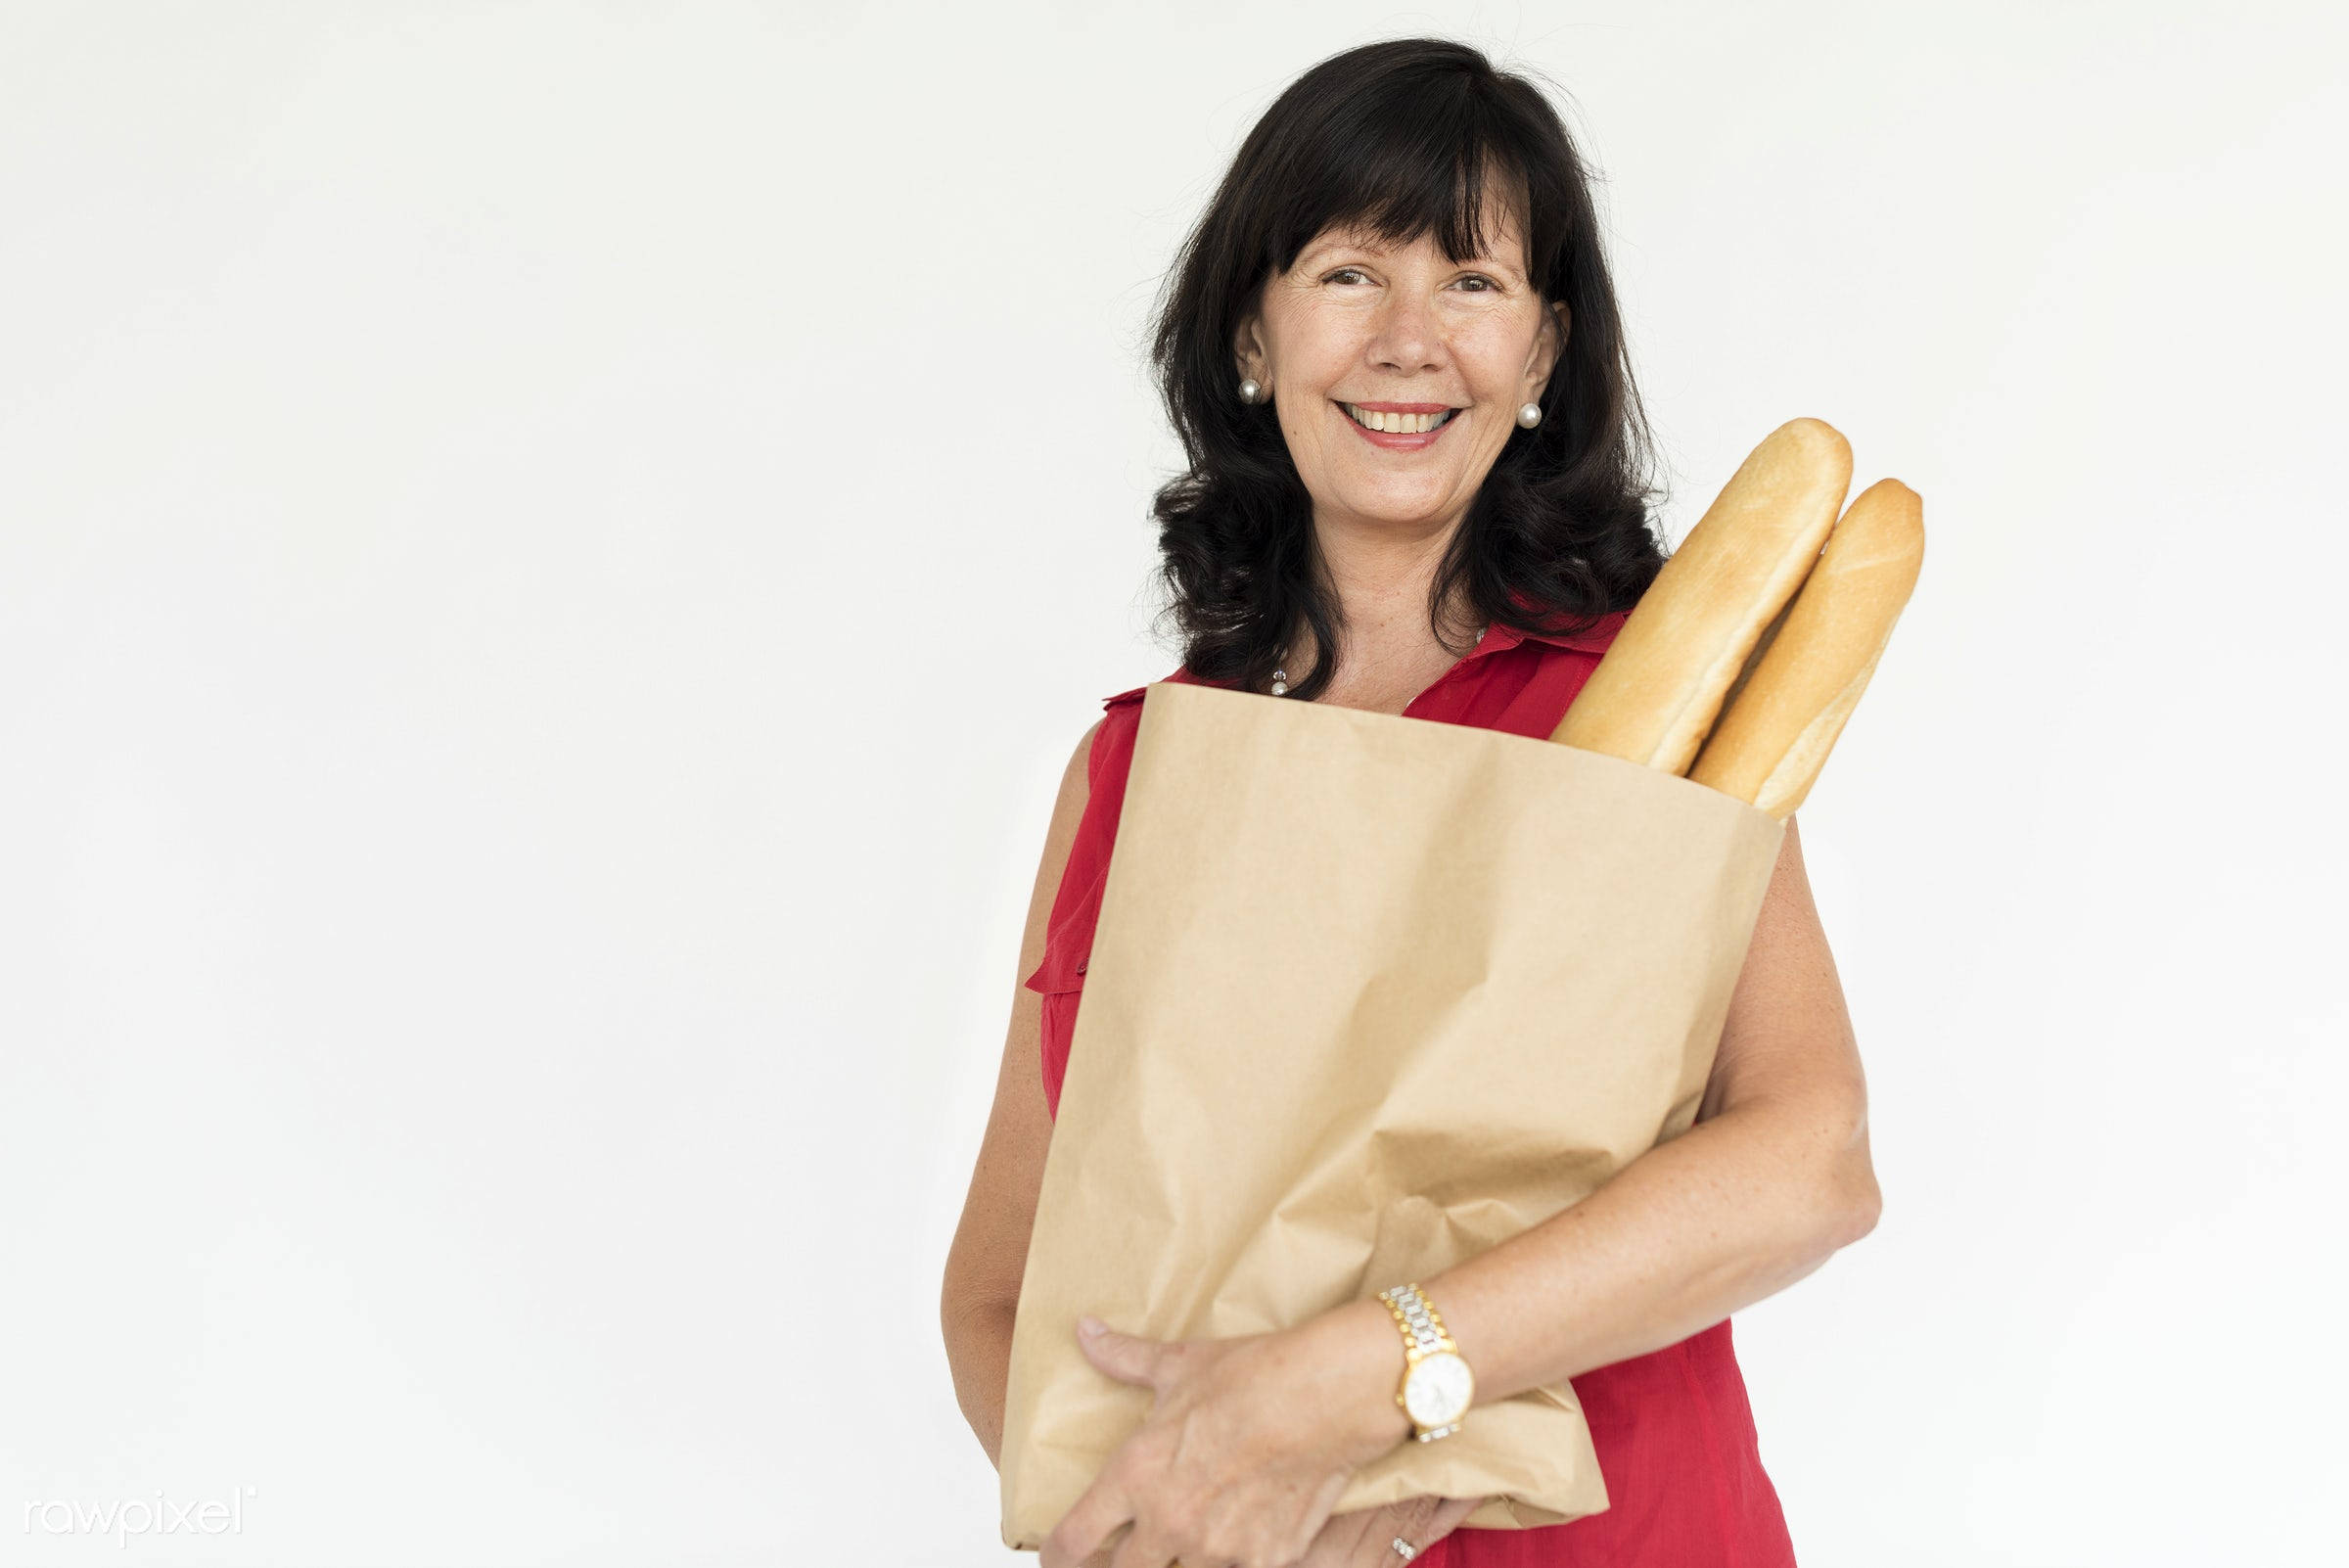 studio, expression, grocery, person, people, caucasian, woman, bread, smile, cheerful, smiling, baguette, isolated,...